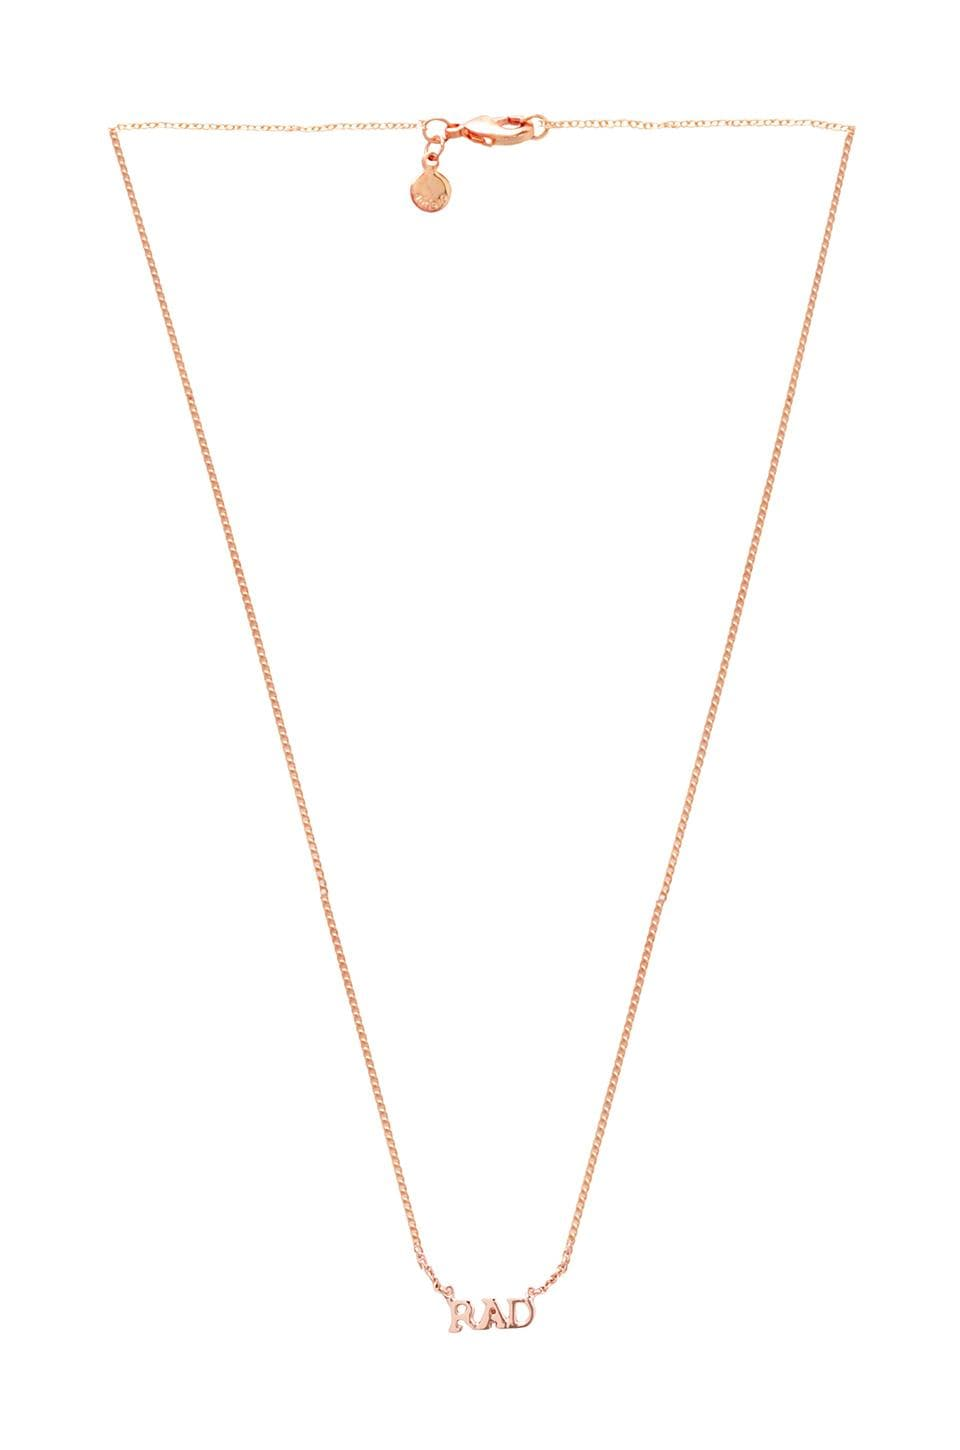 gorjana x REVOLVE Rad Necklace in Rosegold